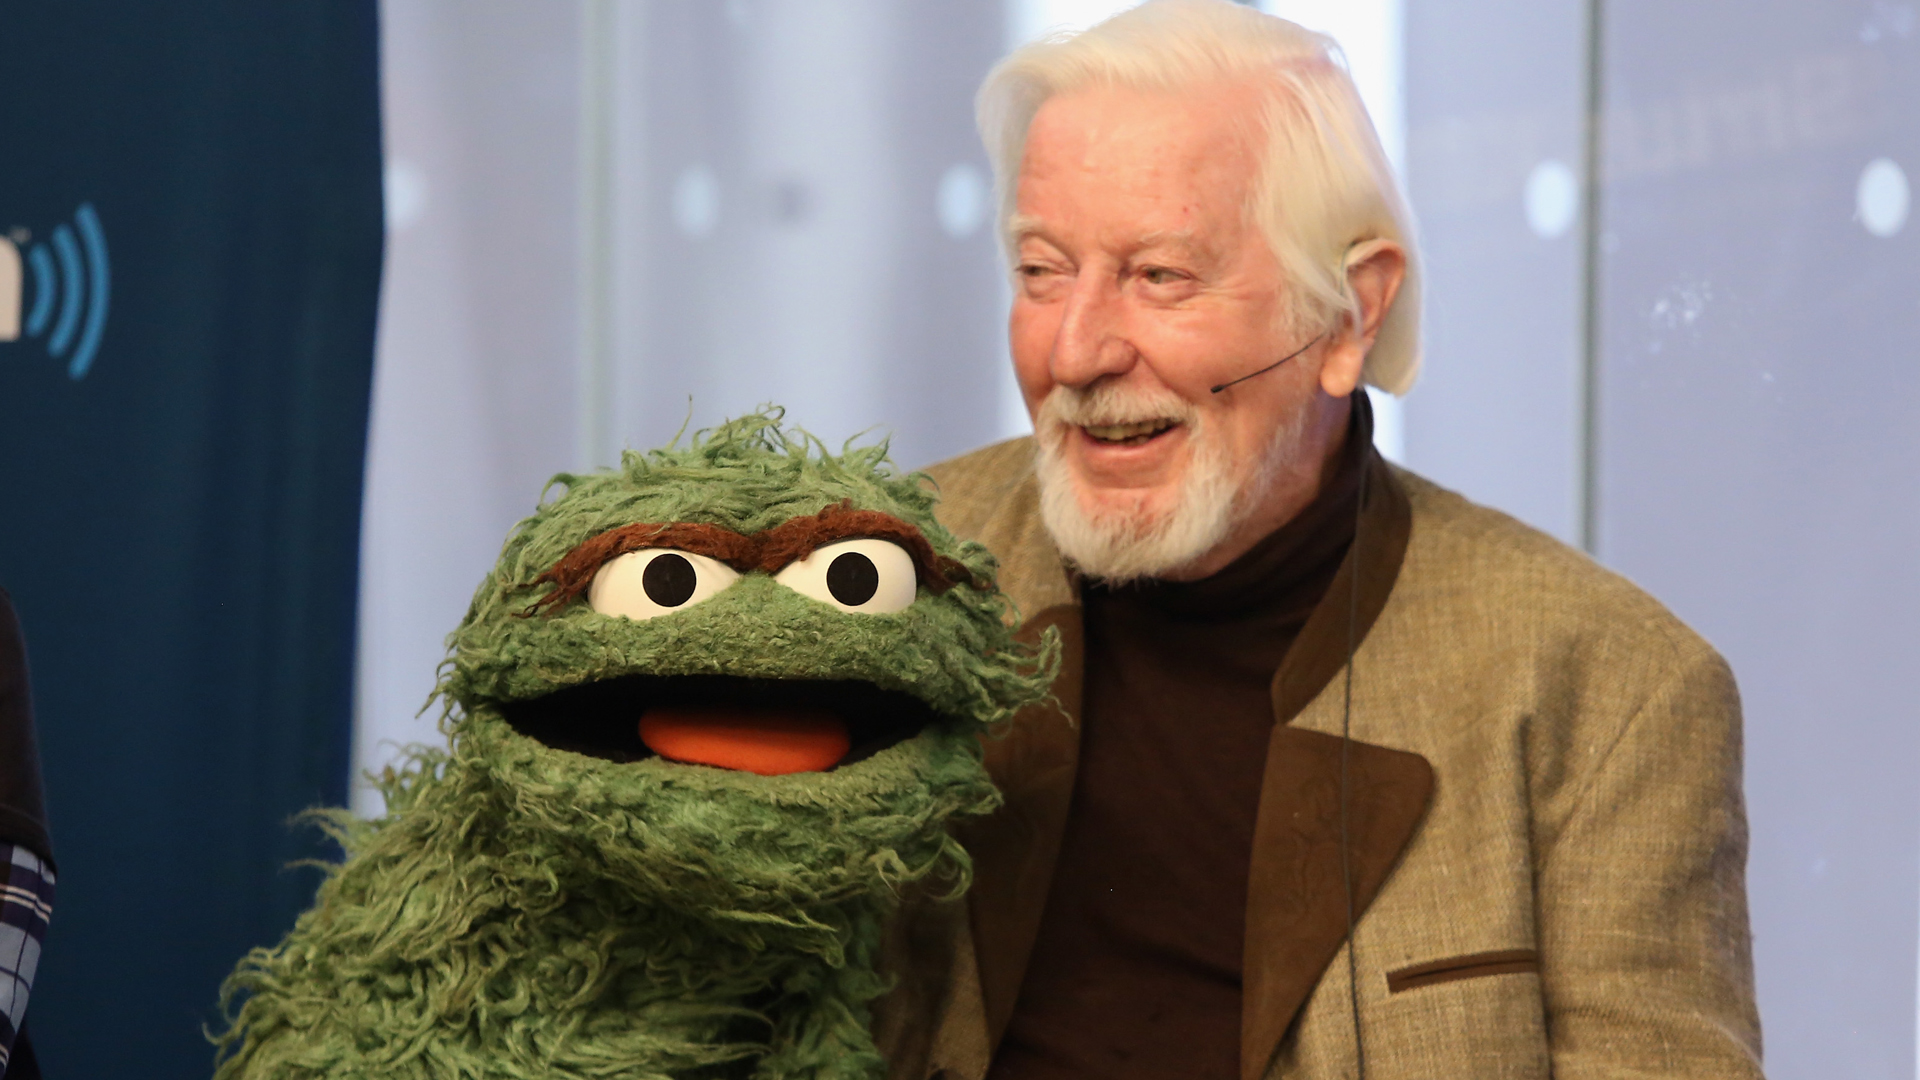 Caroll Spinney attends SiriusXM's Town Hall on Oct. 9, 2014, in New York City. (Credit: Robin Marchant/Getty Images for SiriusXM)